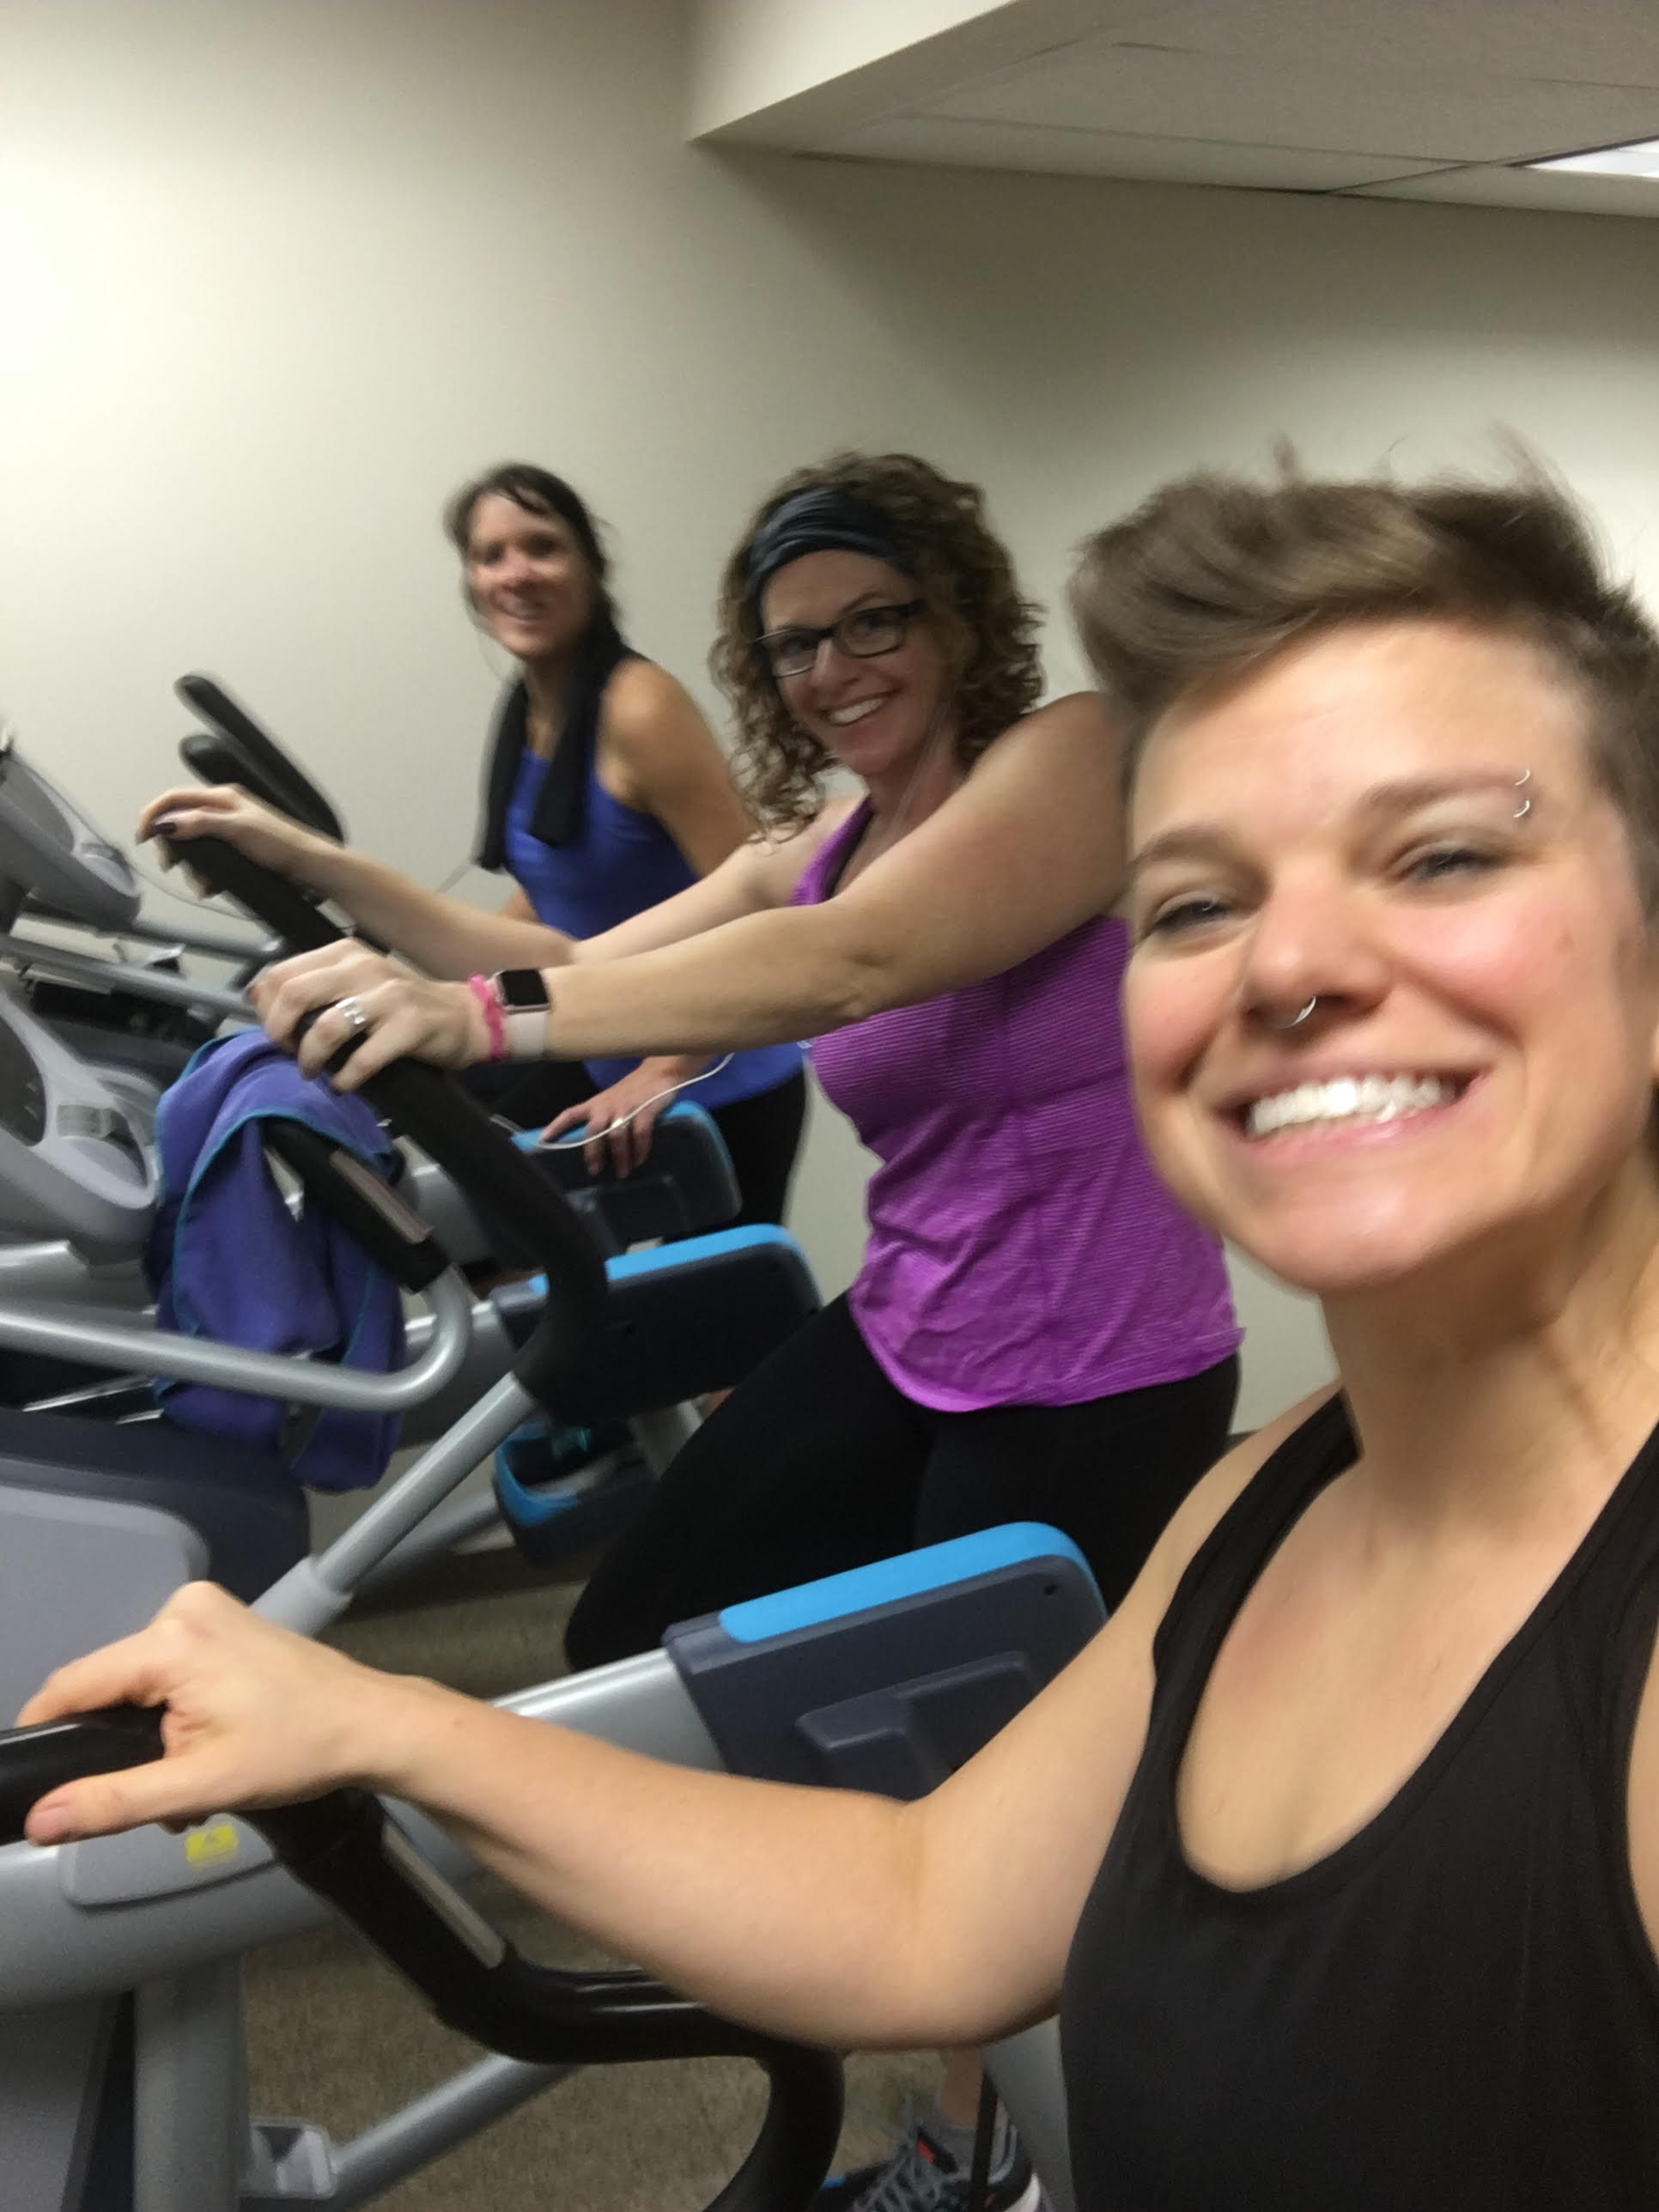 Sweaty people working out on ellipticals.